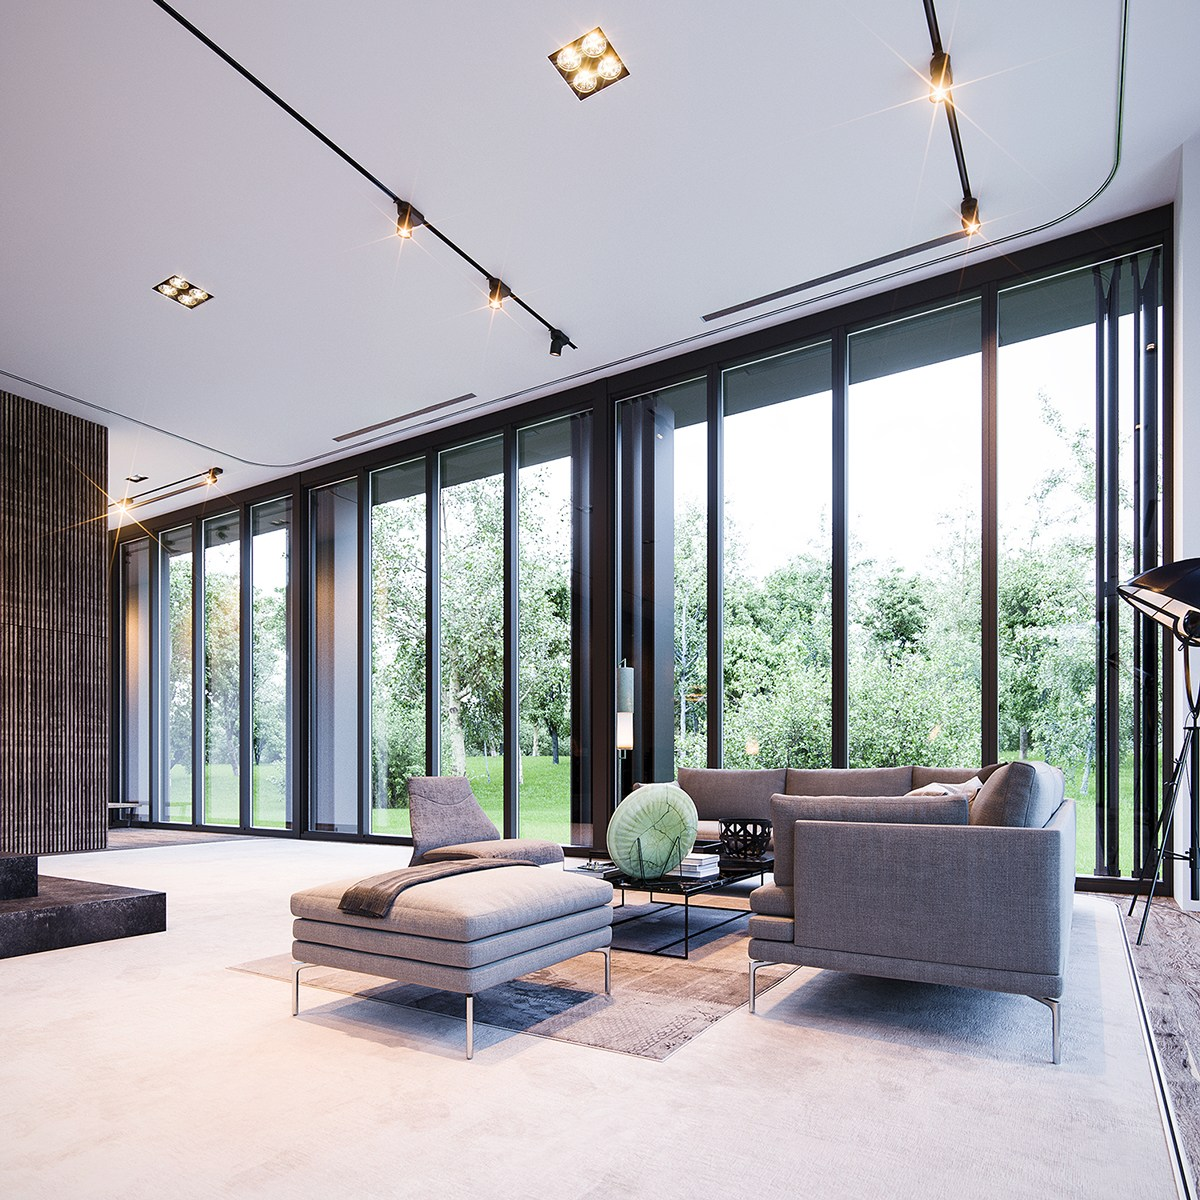 3 natural interior concepts with floor to ceiling windows - Windows Home Design